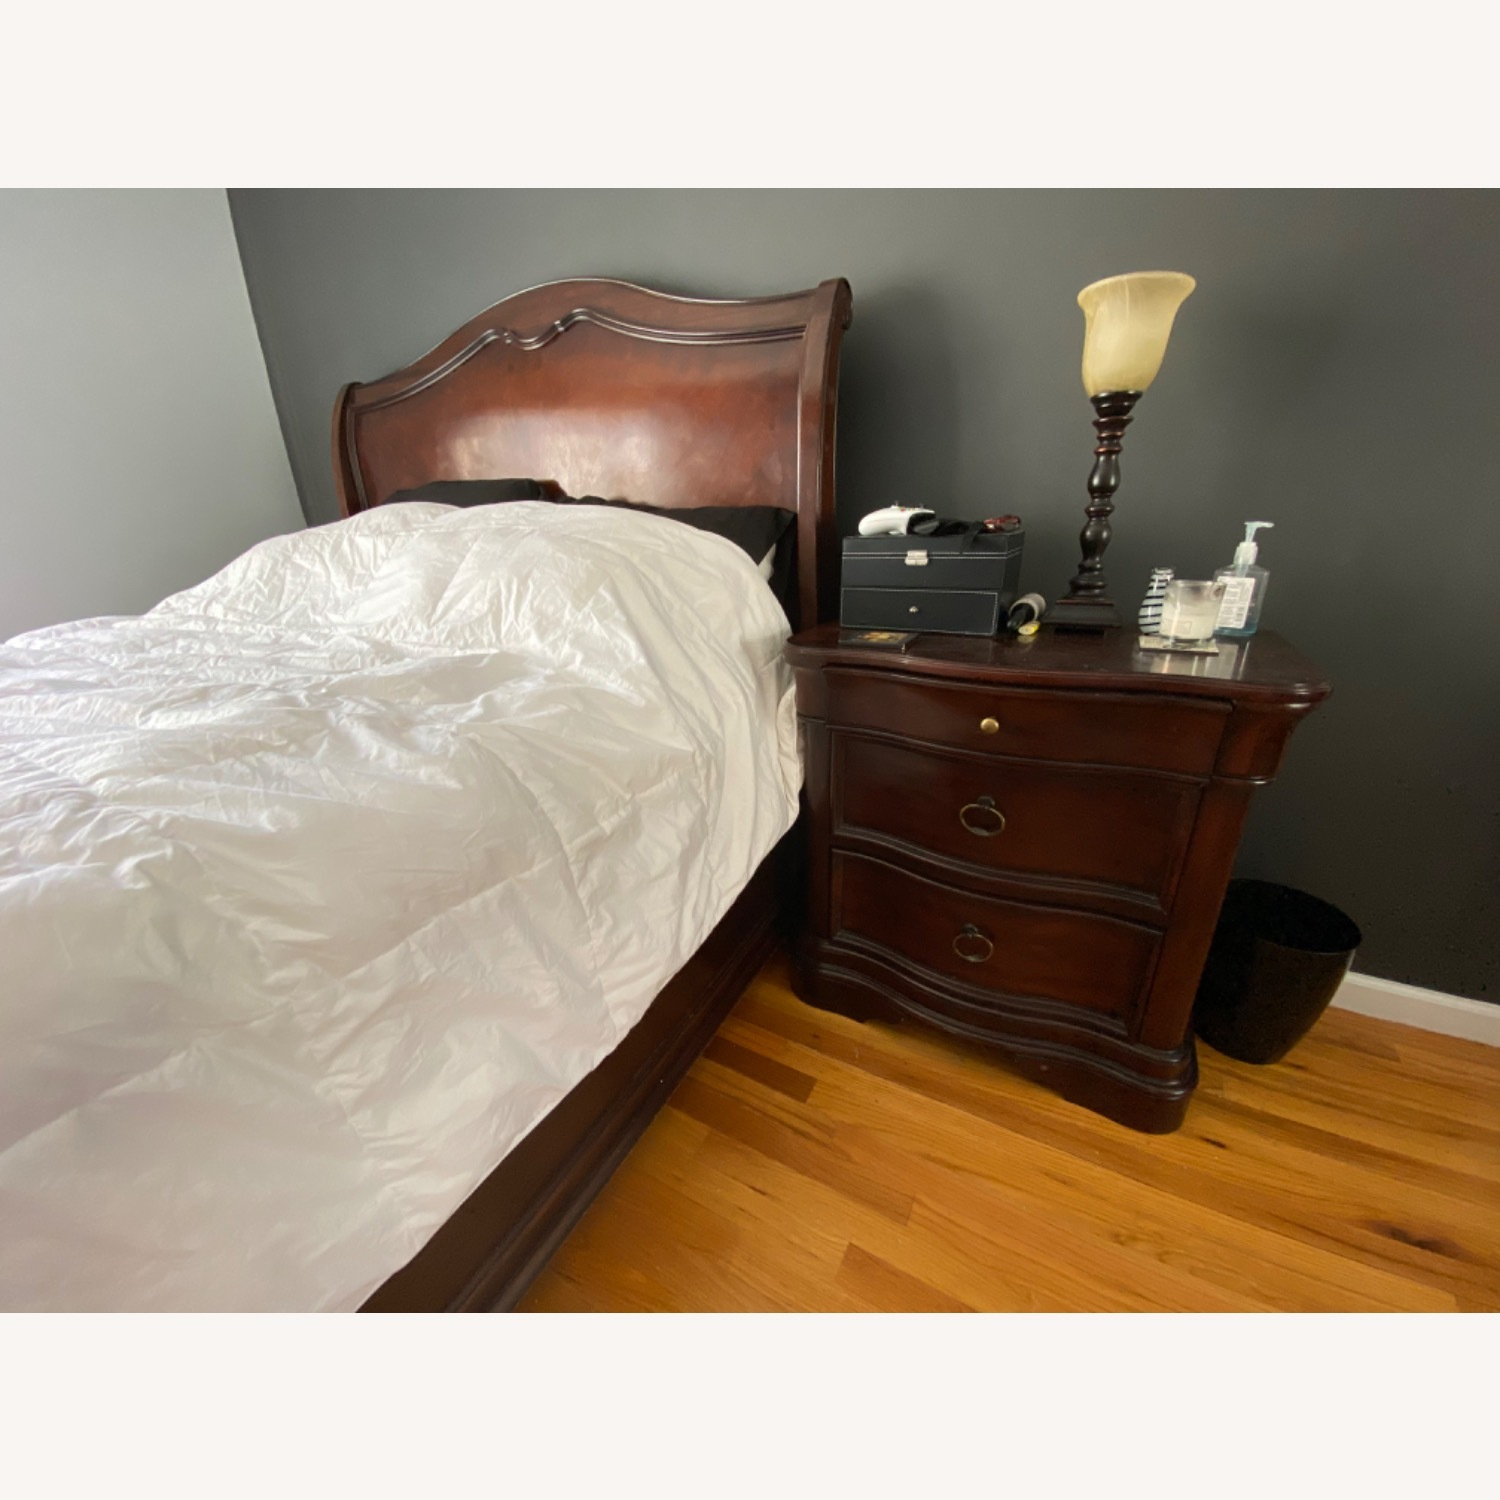 Raymour & Flanigan Sleigh Queen Bed - image-2